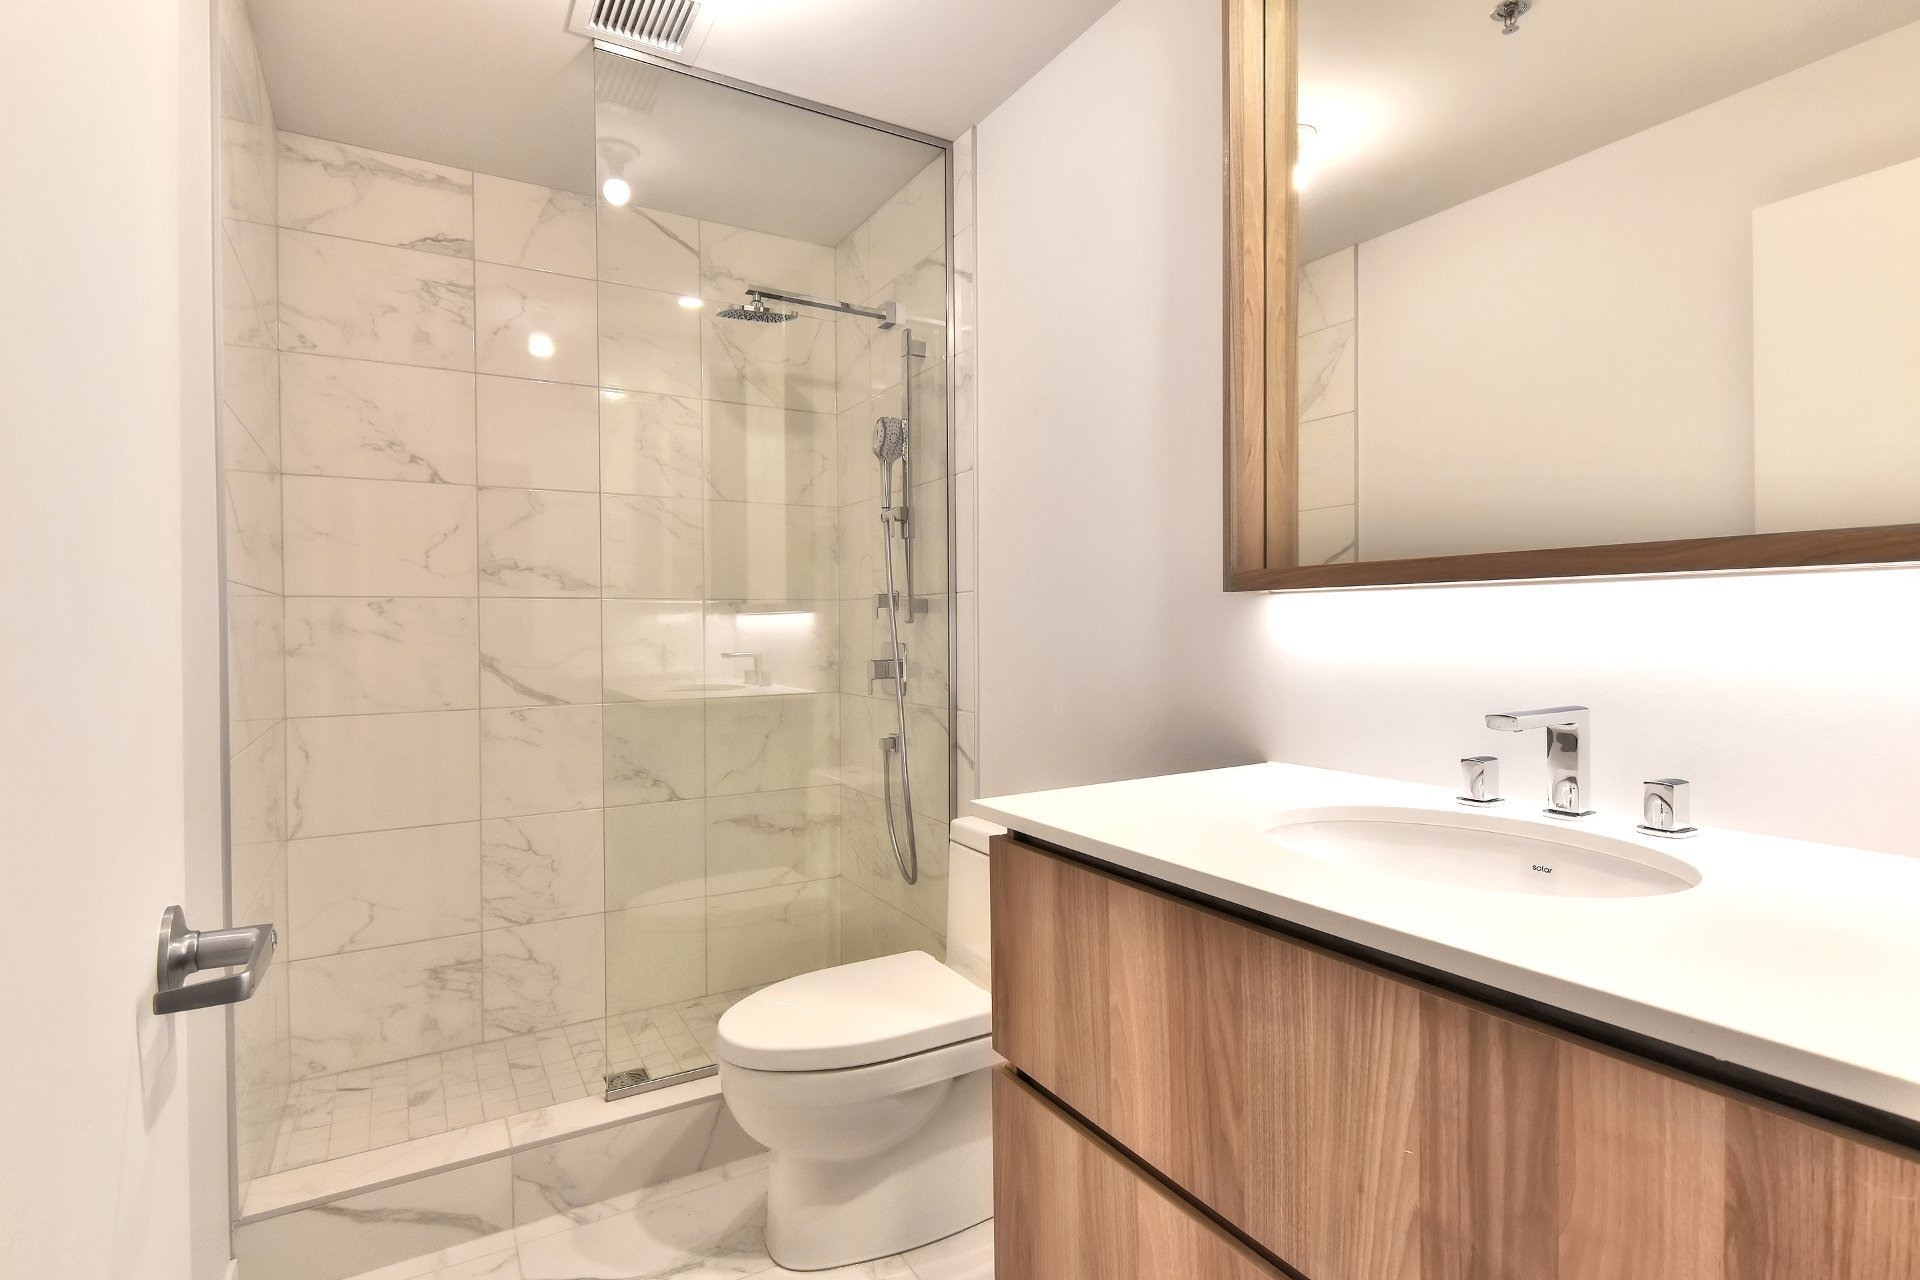 image 6 - Apartment For sale Brossard - 4 rooms